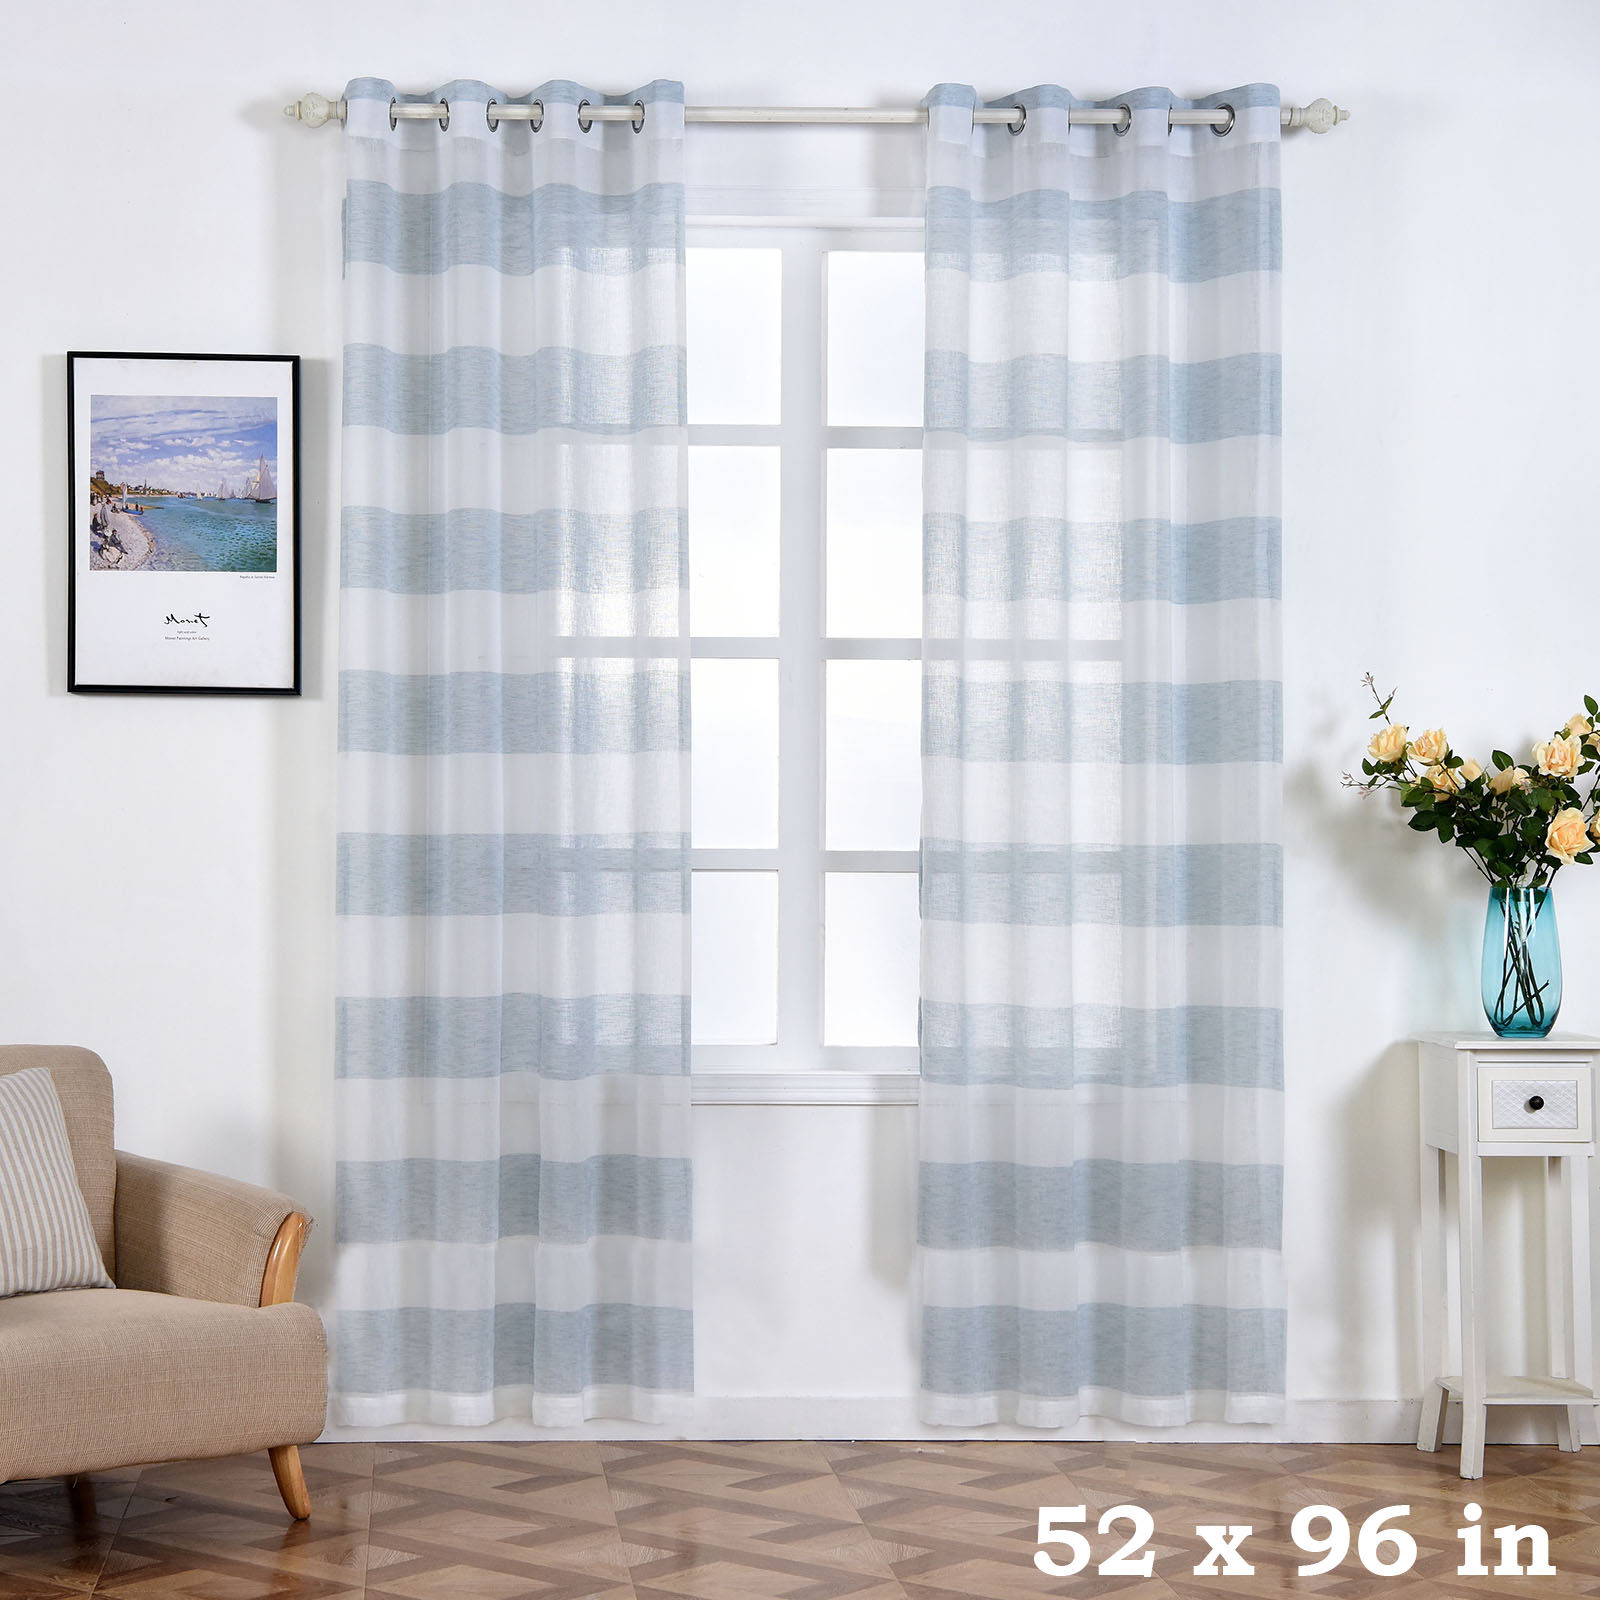 faux gulfport taupe panels linen inch com curtain weave l panel amazon tradition contains grommet blackout window curtains one package royal long dp